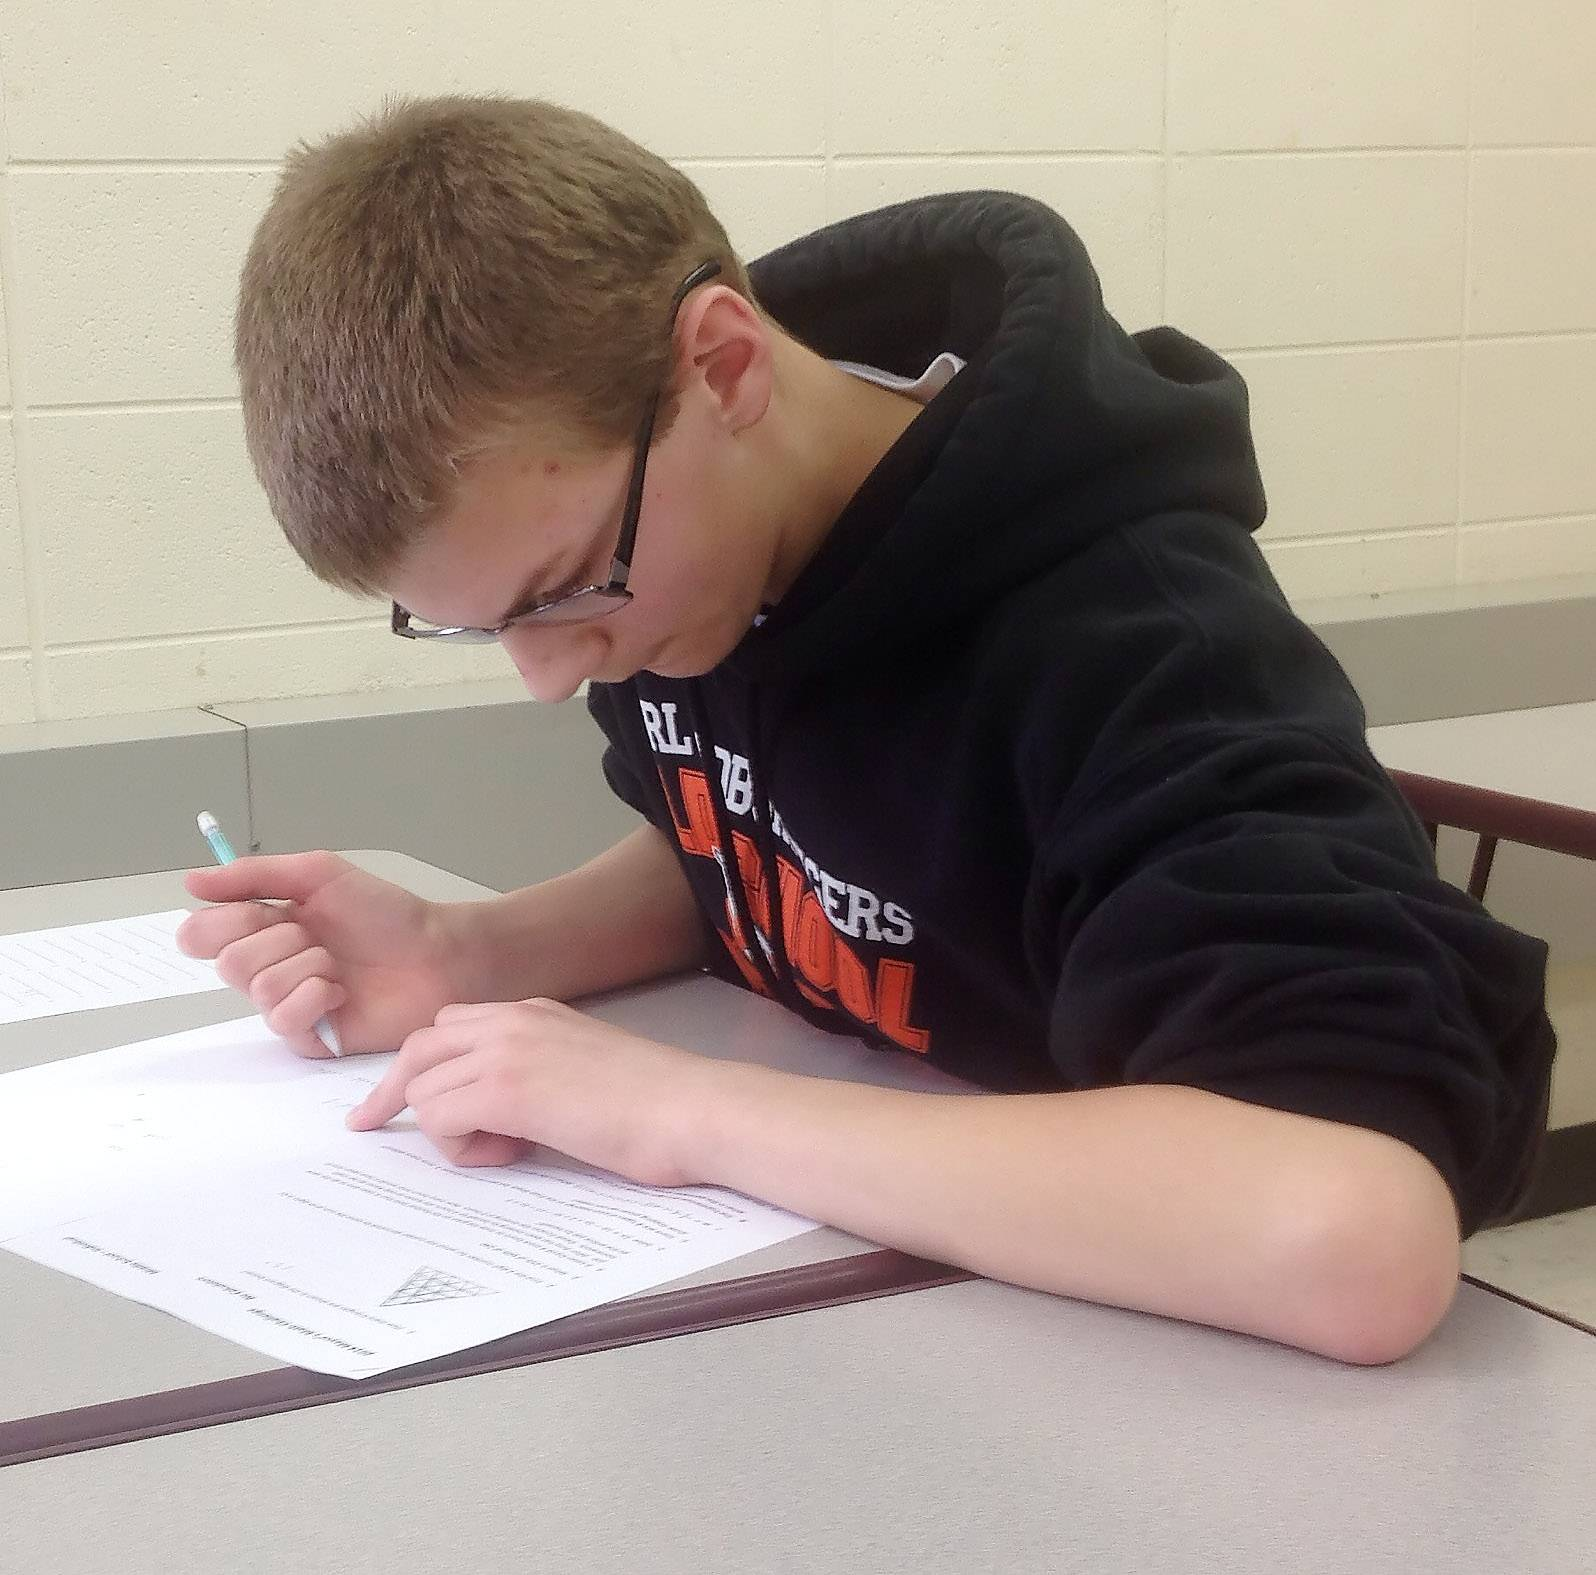 Carl Schoenfield, a 13-year-old eighth-grader at Mundelein's Carl Sandburg Middle School, said the lure of a $500 prize drew him to Sunday's Mayor's Cup Math Challenge. Dozens of students sixth grade through high school competed in the inaugural event.